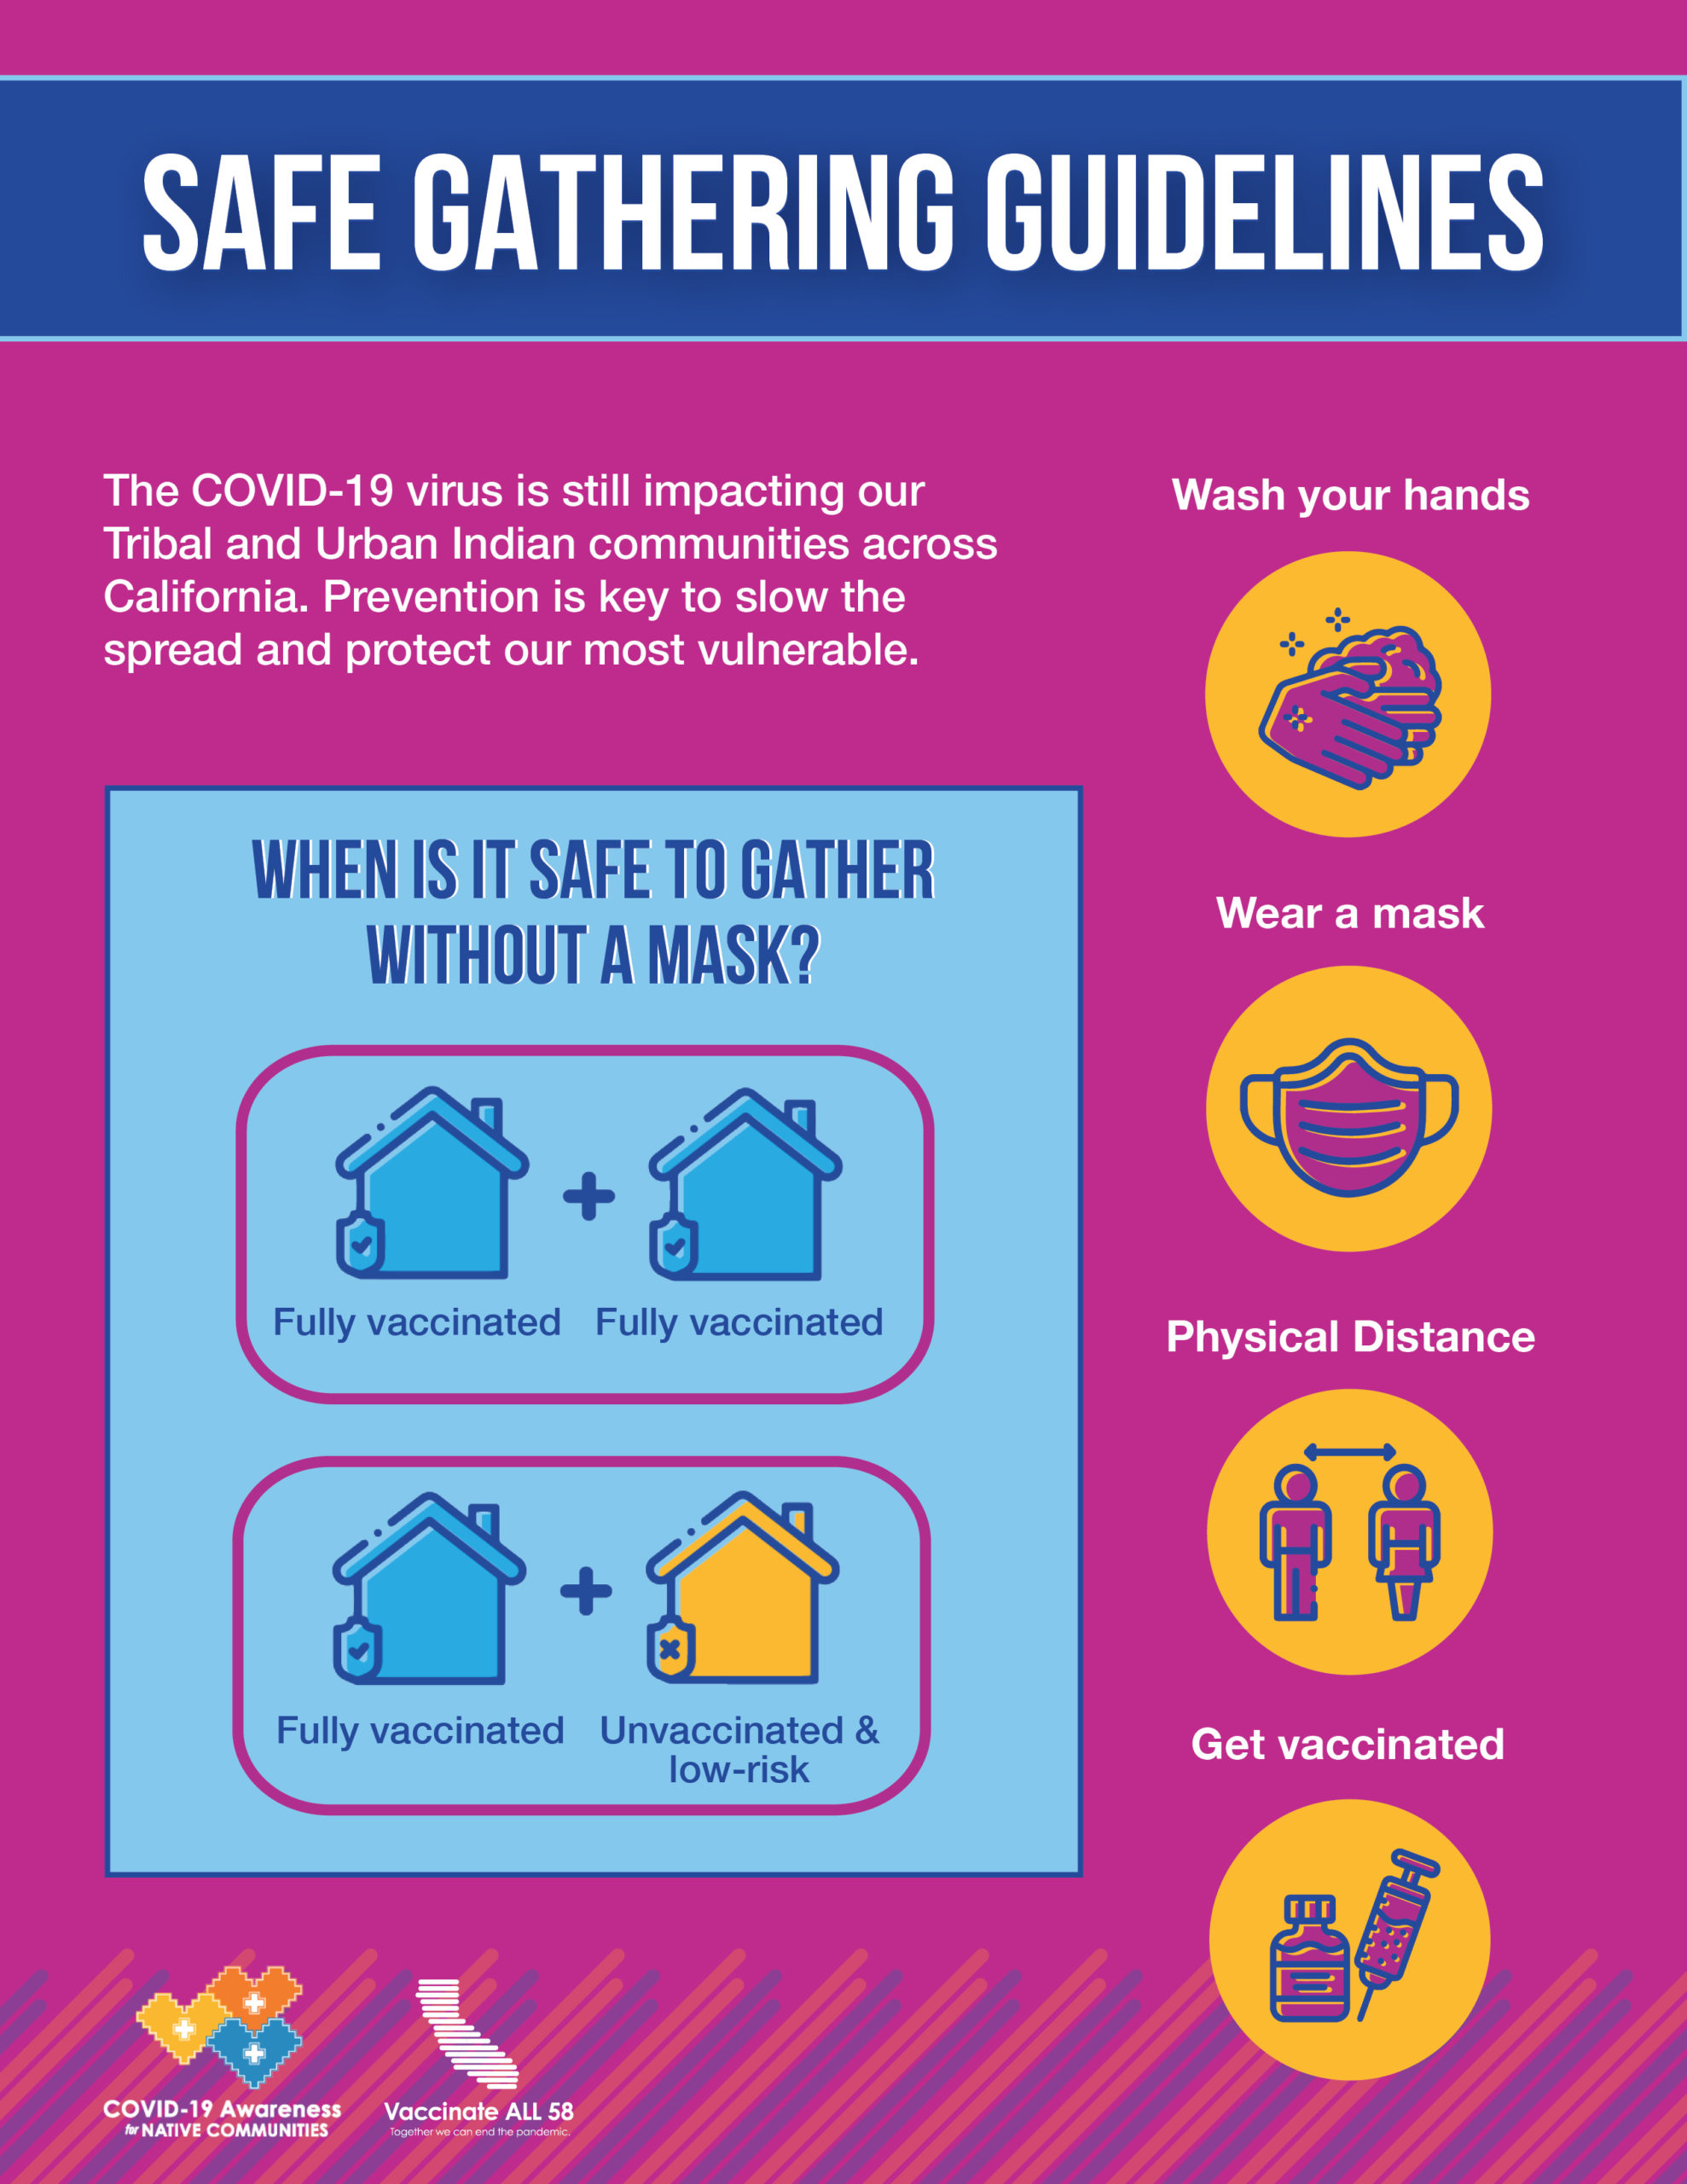 """Safe Gathering Guidelines. The COVID-19 virus is still impacting our Tribal and Urban Indian communities across California. Prevention is key to slow the spread and protect our most vulnerable. [ID Description for ALT IMAGE: Purple background. Blue banner with white uppercase font: """"SAFE GATHERING GUIDELINES"""". Two columns. On the left column shows blue square banner with dark blue font: """"WHEN IS IT SAFE TO GATHER WITHOUT MASK?"""" Next shows graphic images of two blue houses, both fully vaccinated. Next shows graphic images of two houses; blue house (fully vaccinated) and yellow house (unvaccinated & low risk). Right column: """"Wash your hands"""", next, shows yellow circle with purple hands washing. Next, """"Wear a mask"""". Next shows yellow circle with purple mask. Next, """"Physical Distance"""", next shows yellow circle with two purple people standing apart. Next, """"Get vaccinated"""", next shows yellow circle with purple shot bottle and needle.]"""